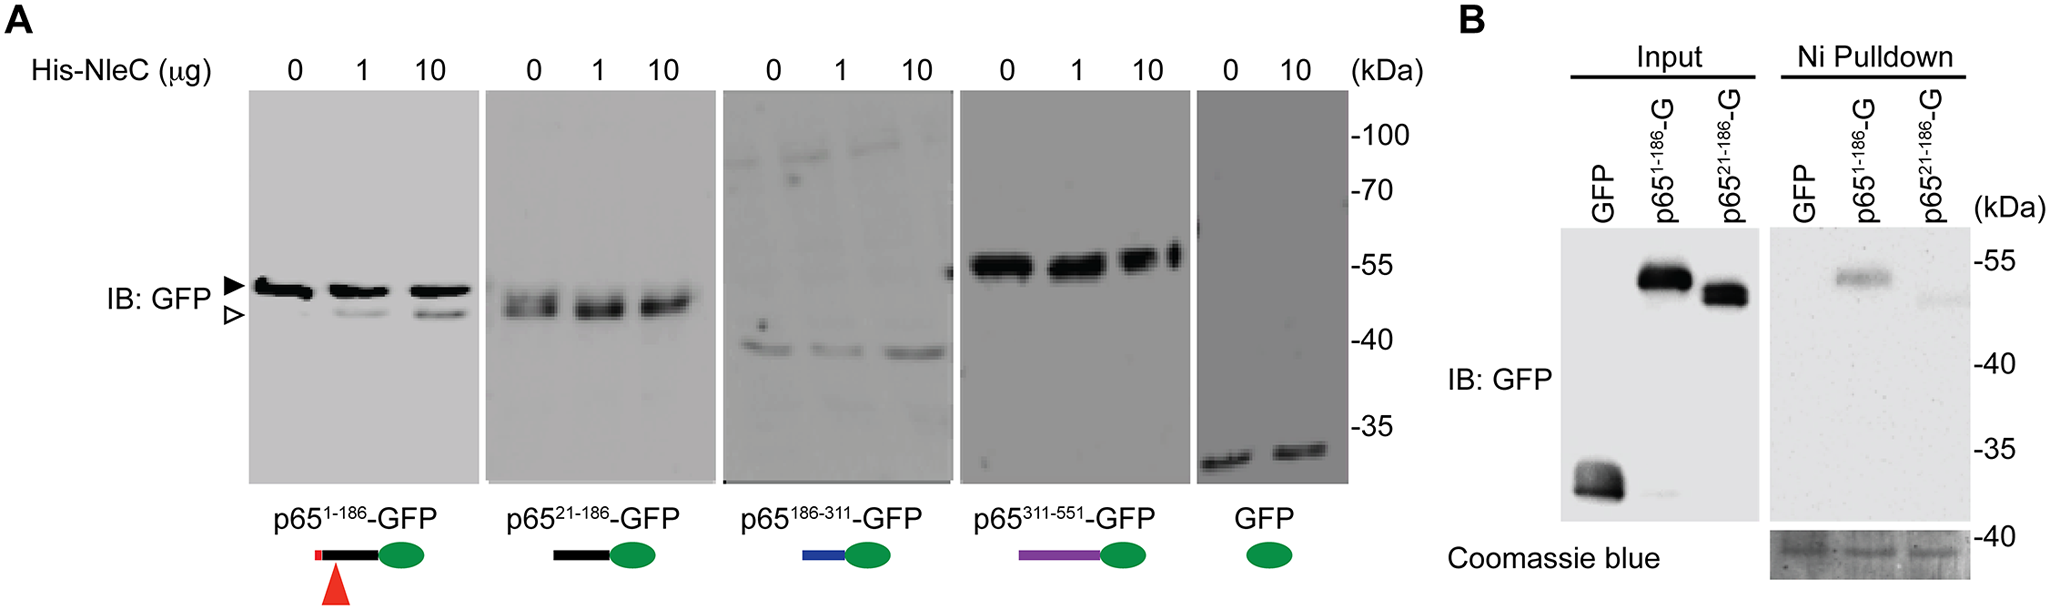 The N-terminal 20 amino acids of p65 are required for NleC to bind and cleave p65.